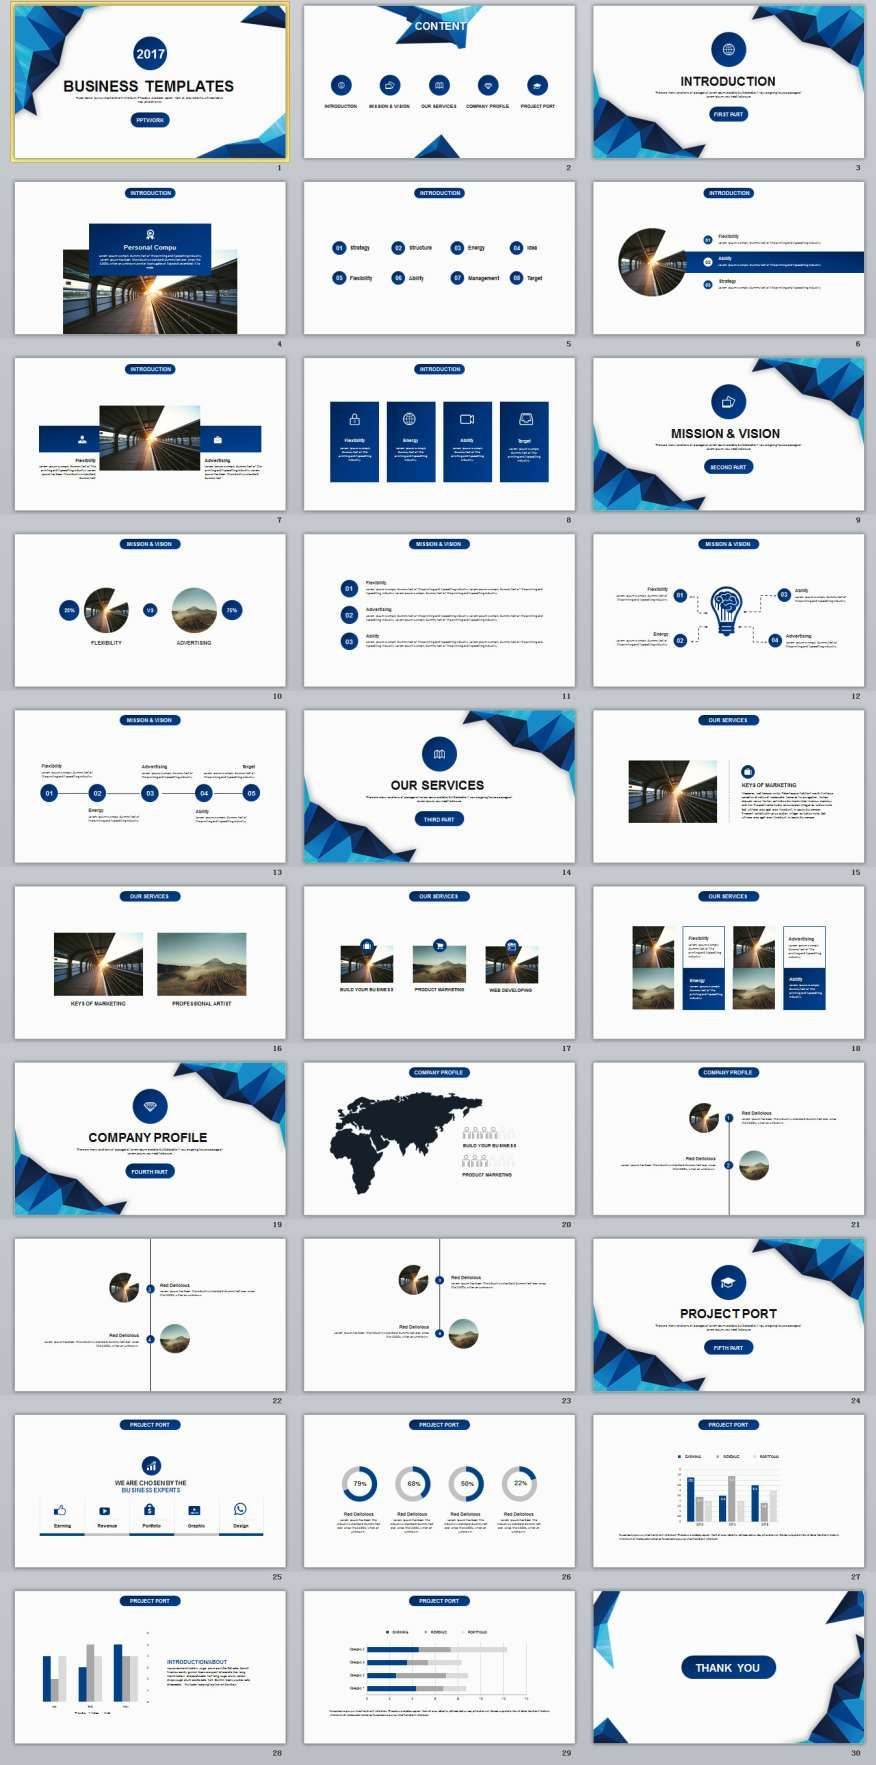 30+ blue business plan presentation powerpoint templates | 2018, Presentation templates